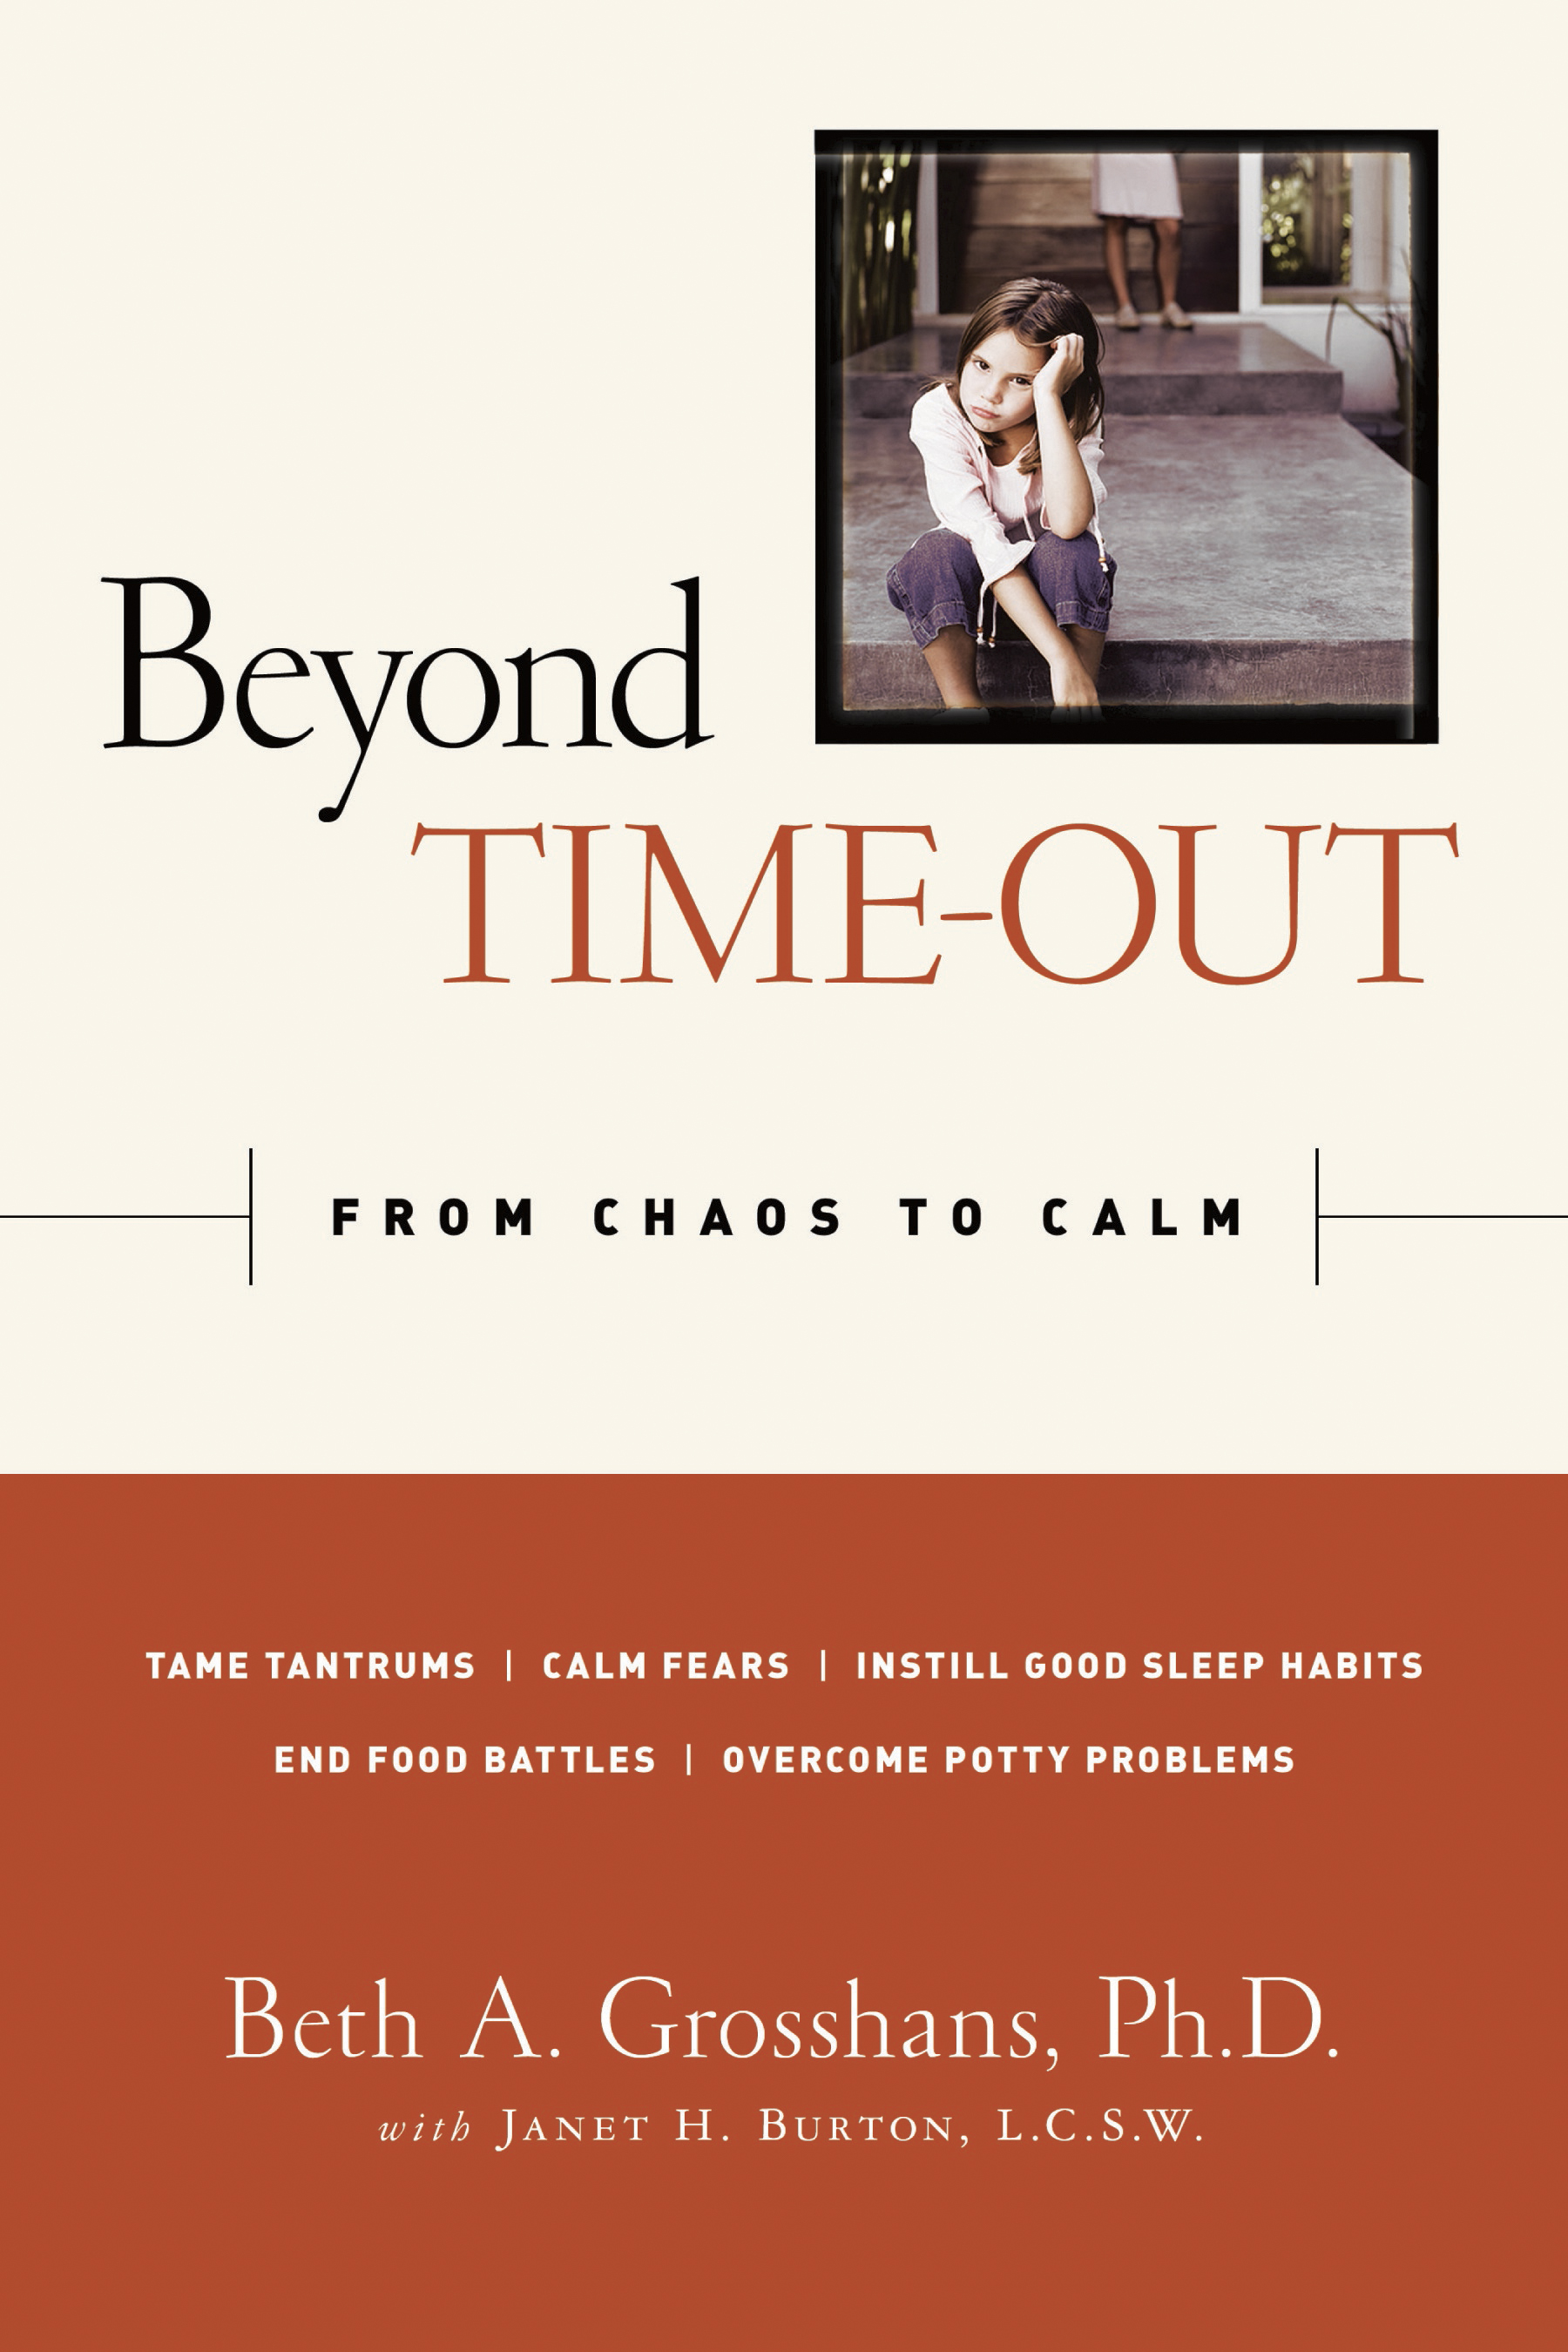 Beyond Time Out by Beth A. Grosshans, Ph. D. and Janet H. Burton, L.C.S.W.